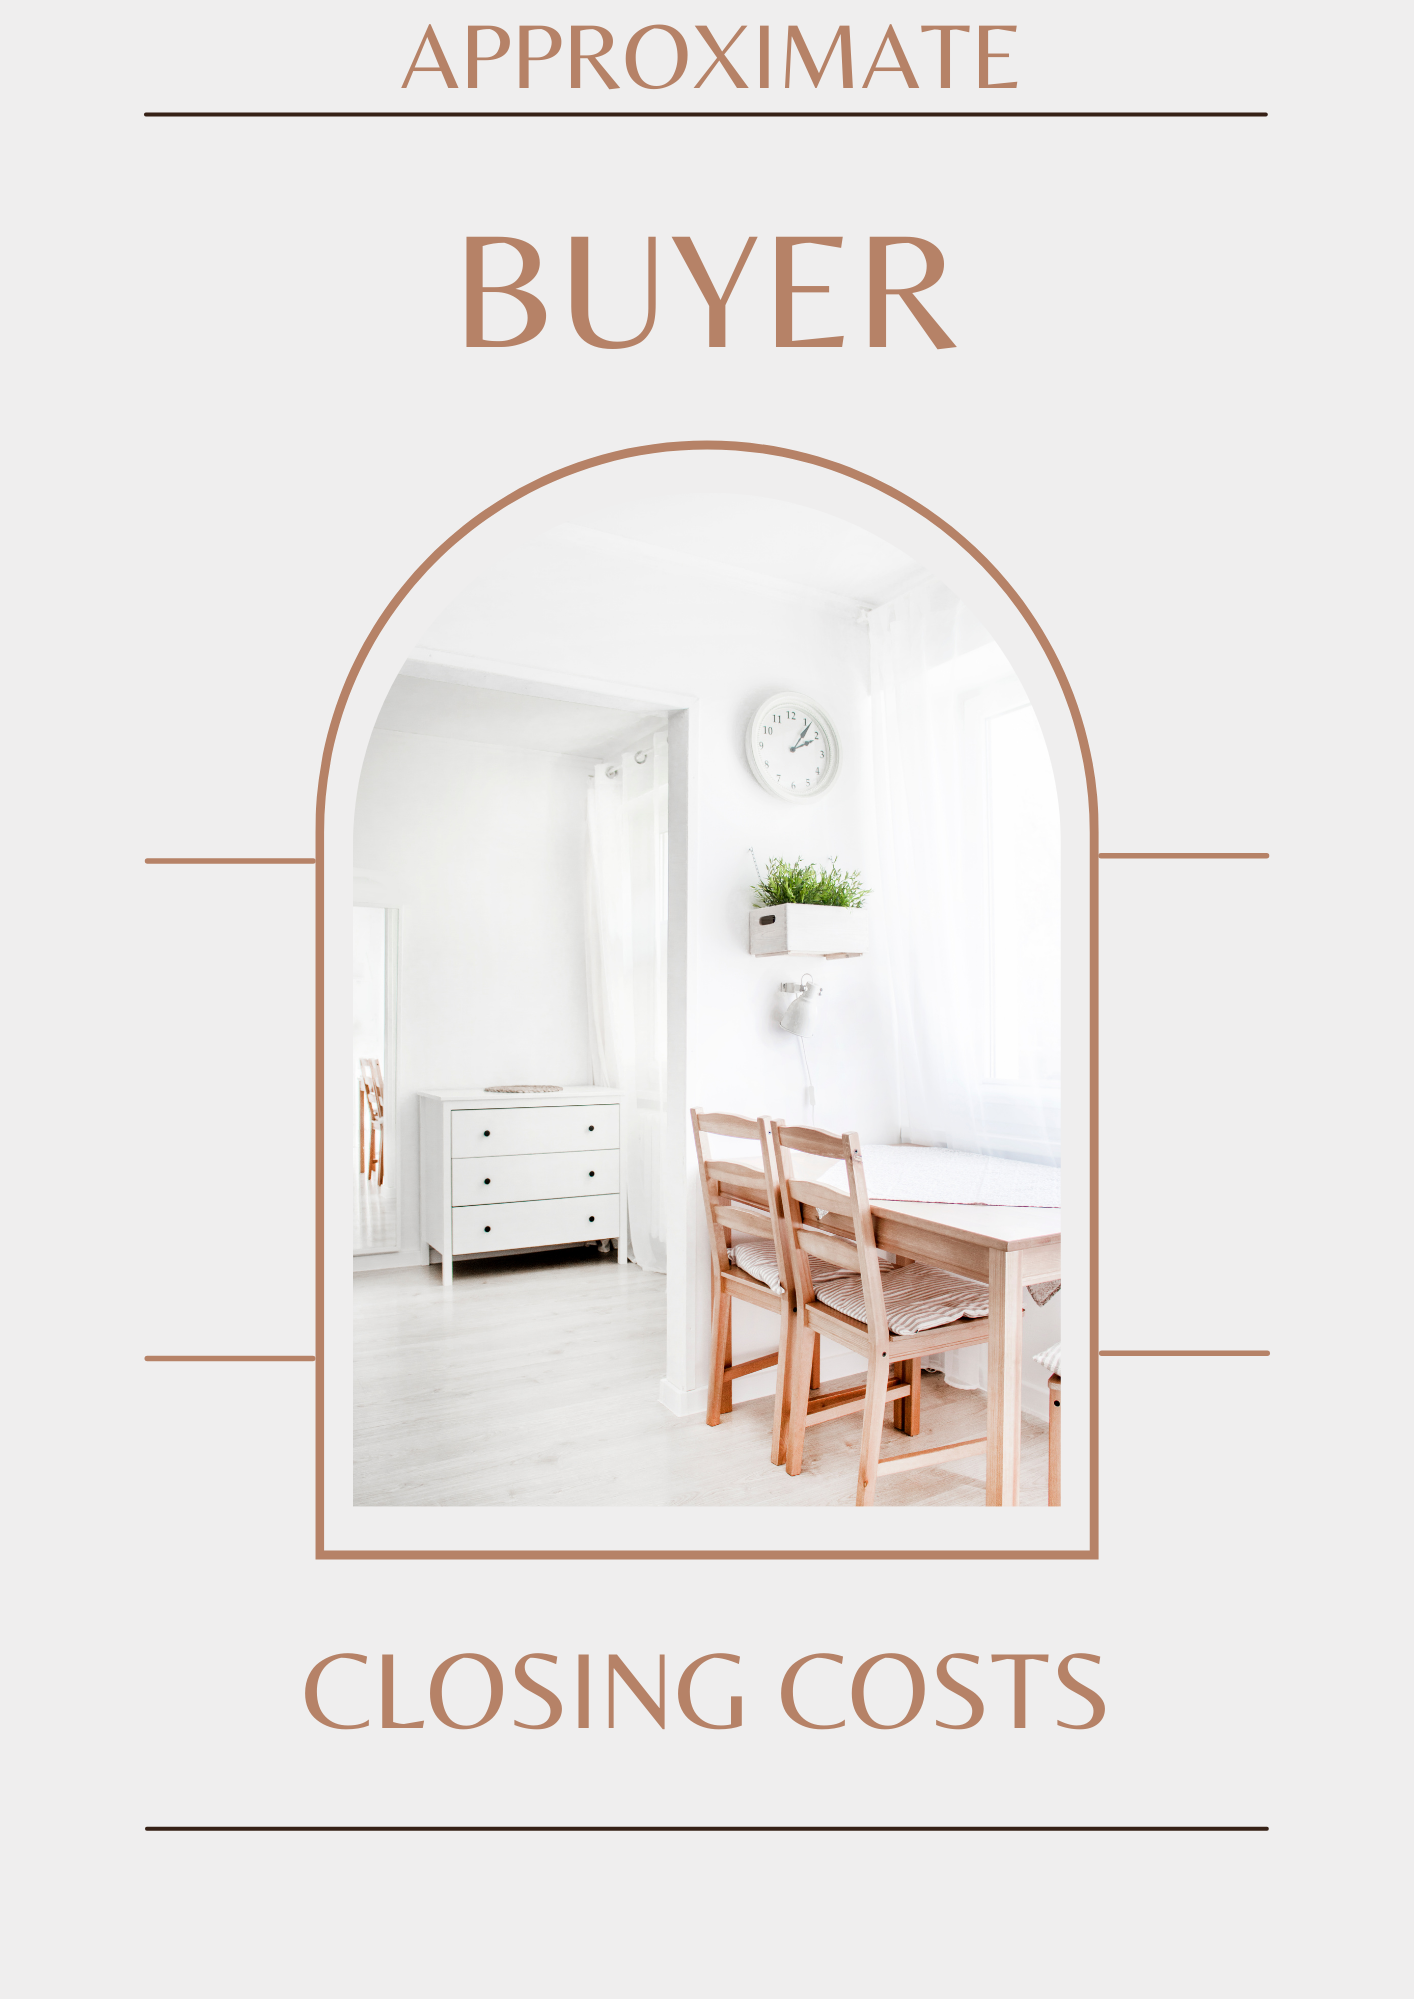 BuyerClosingCosts